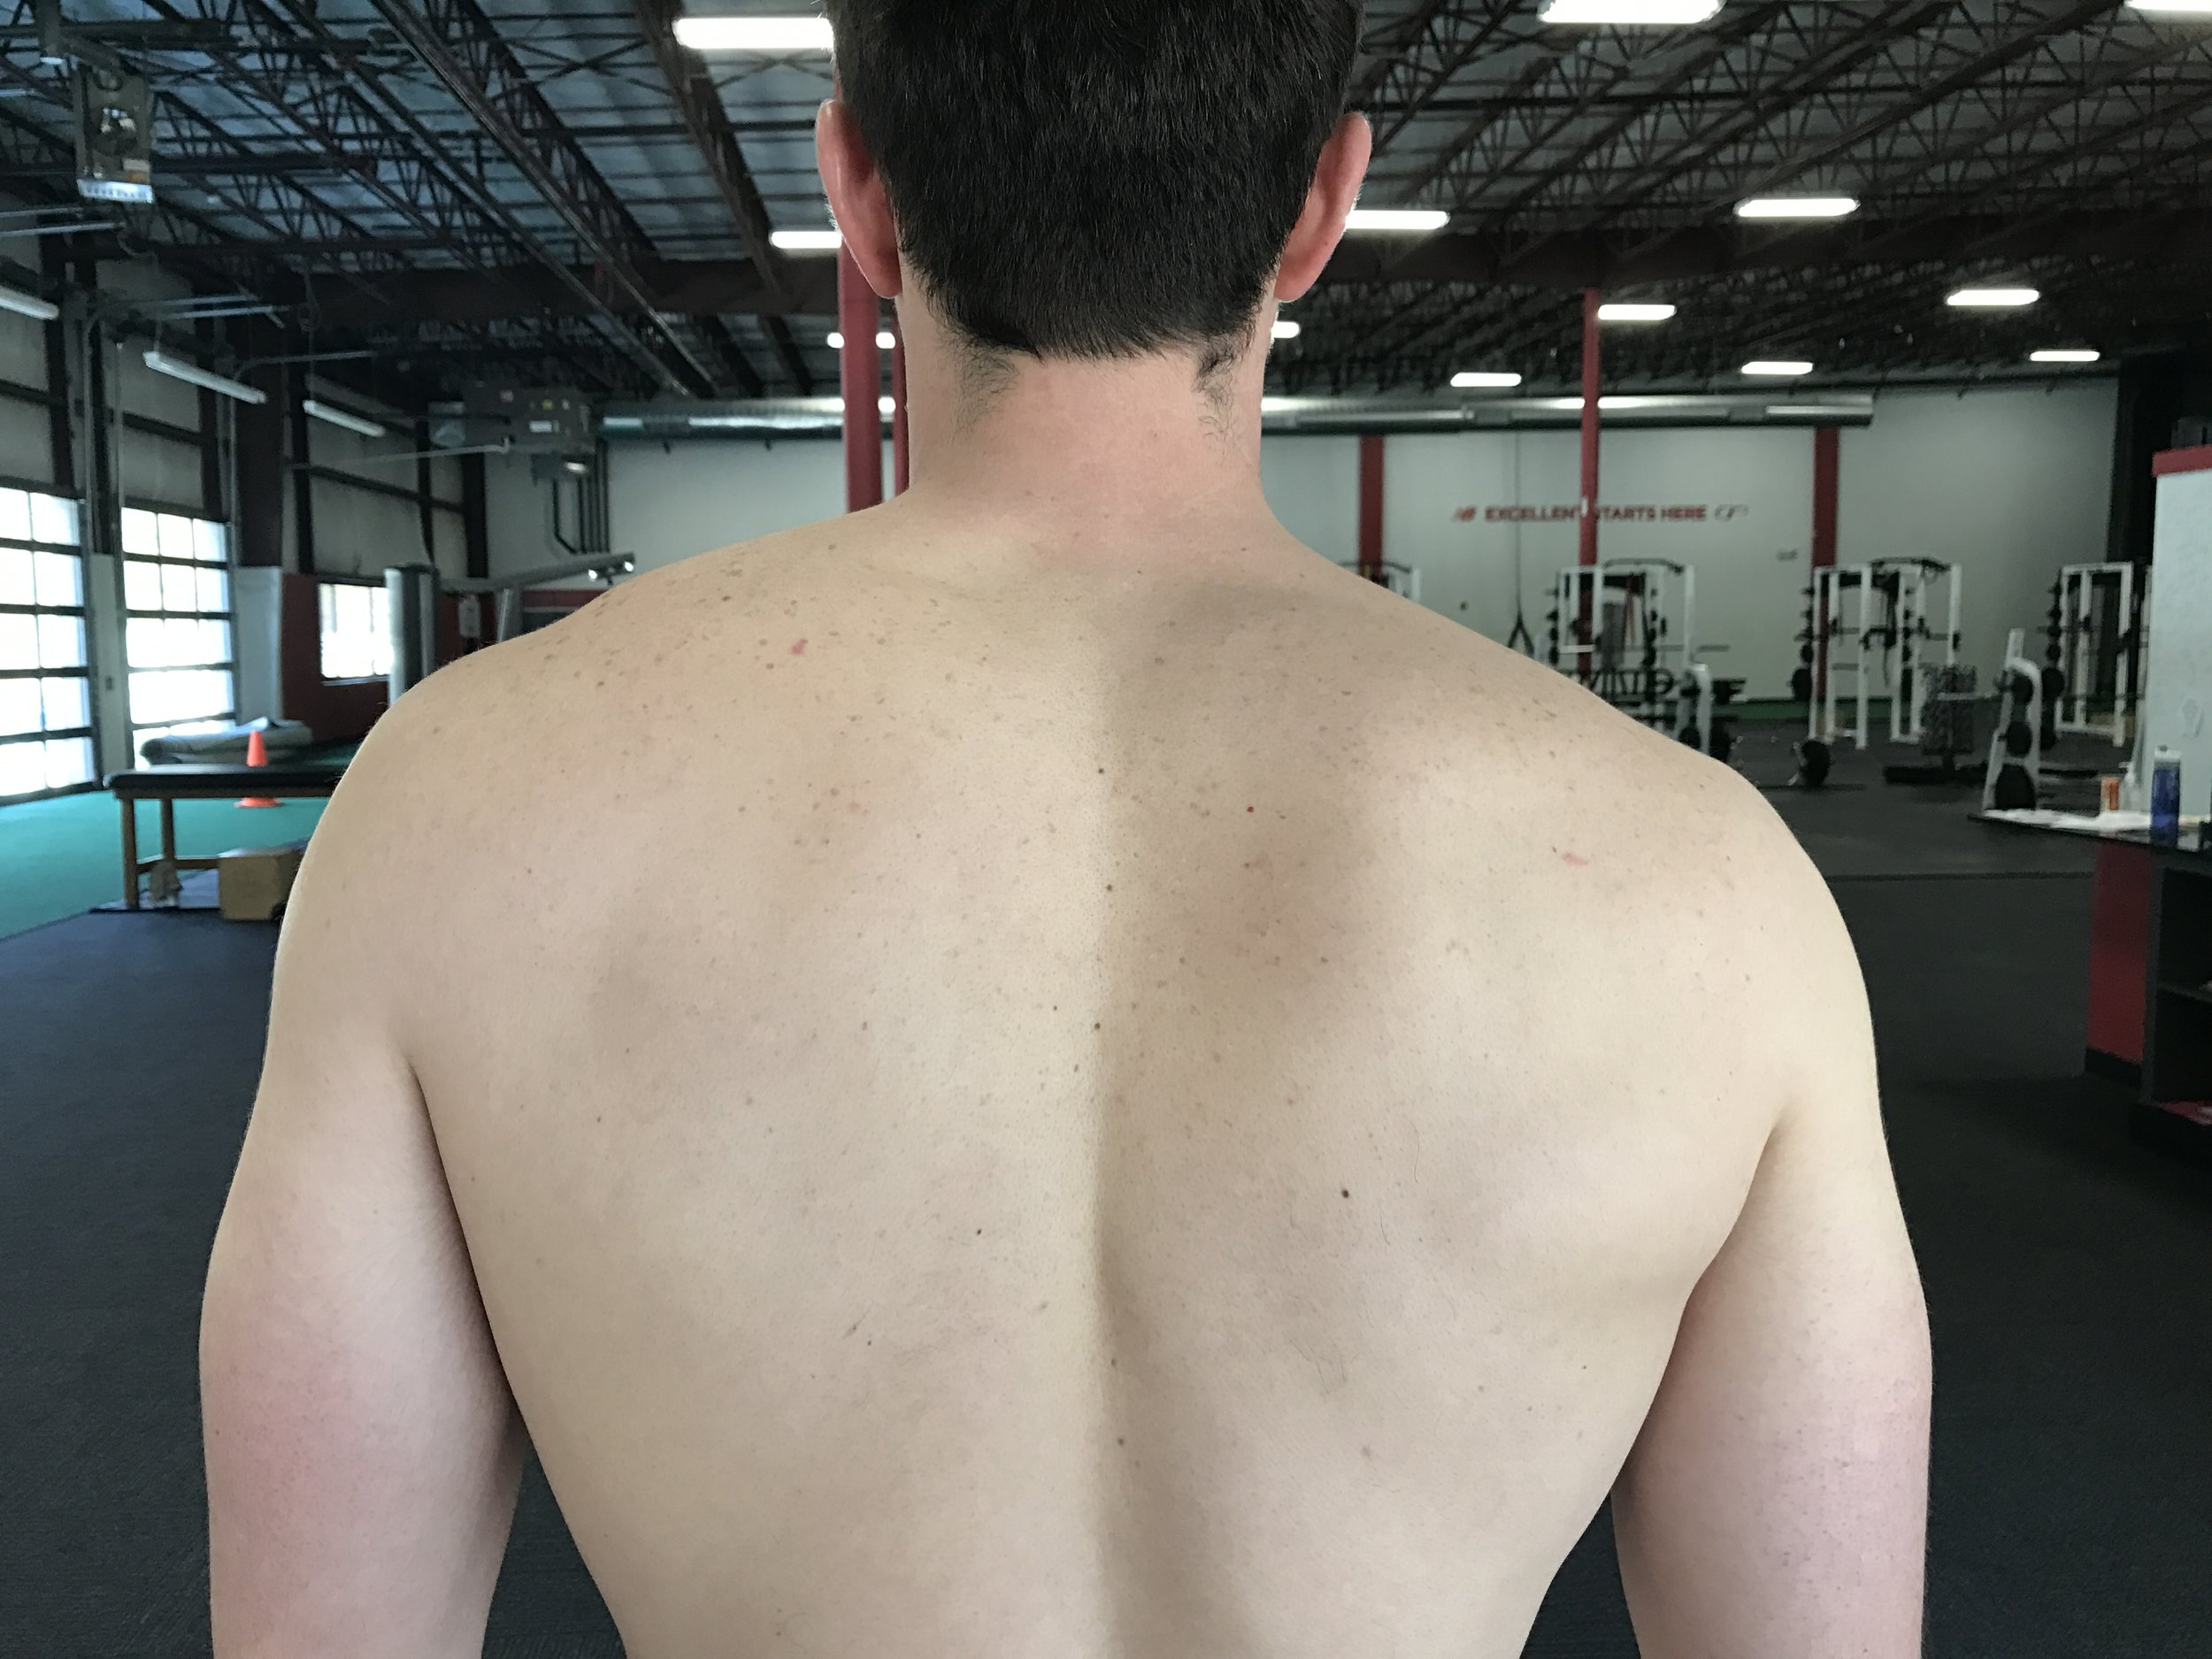 Low right shoulder